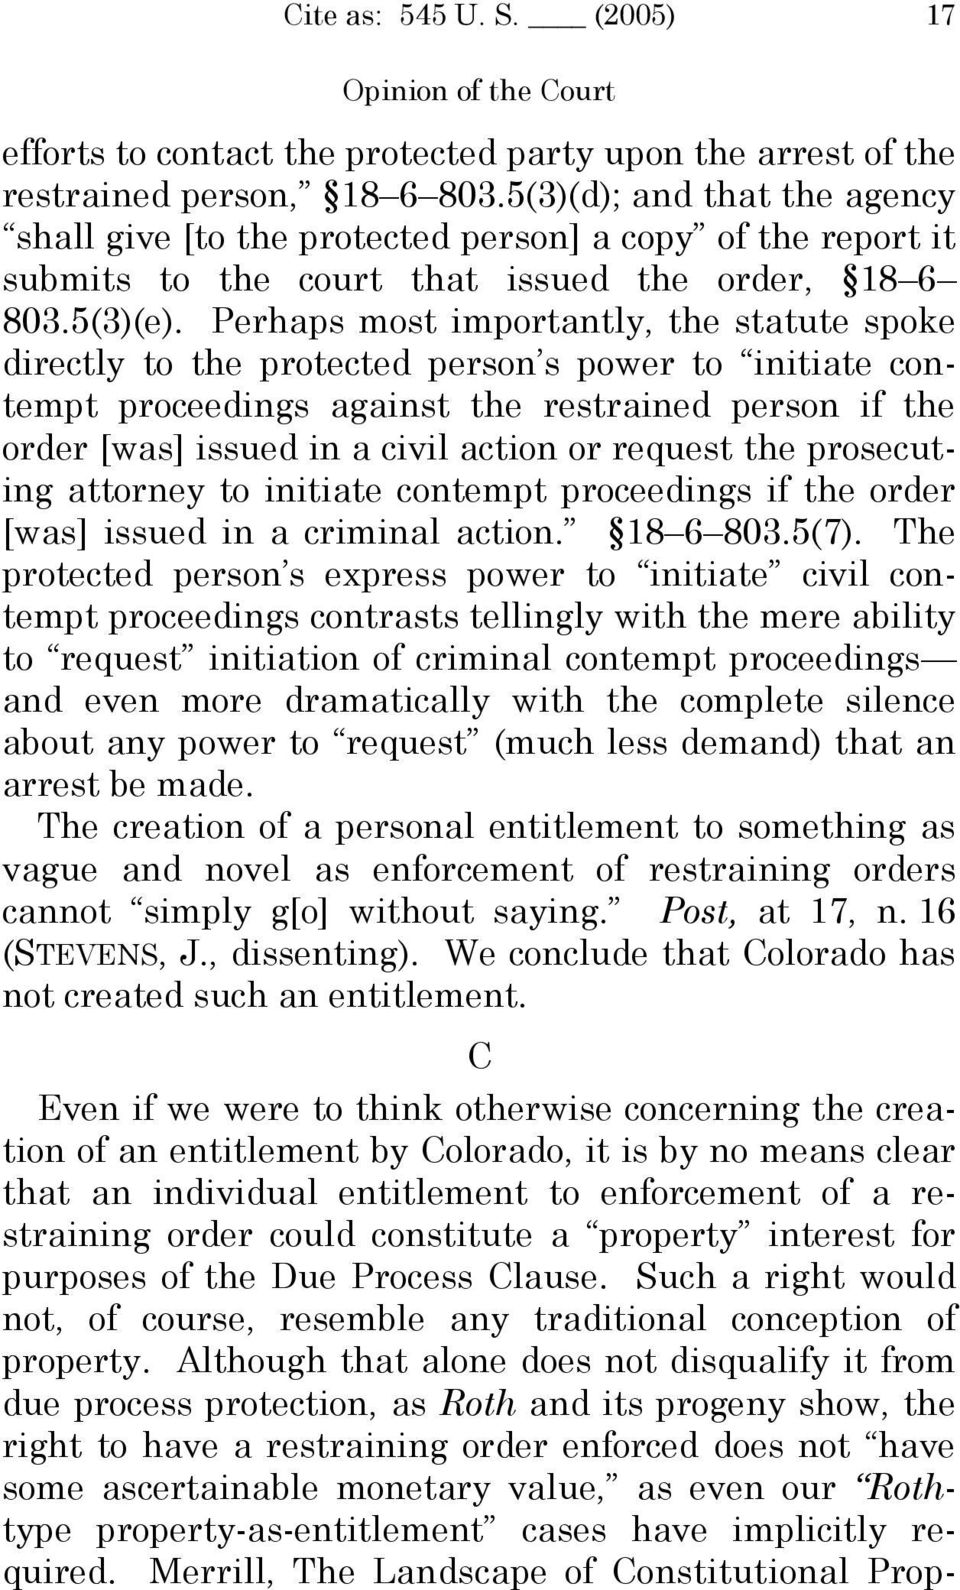 Perhaps most importantly, the statute spoke directly to the protected person s power to initiate contempt proceedings against the restrained person if the order [was] issued in a civil action or